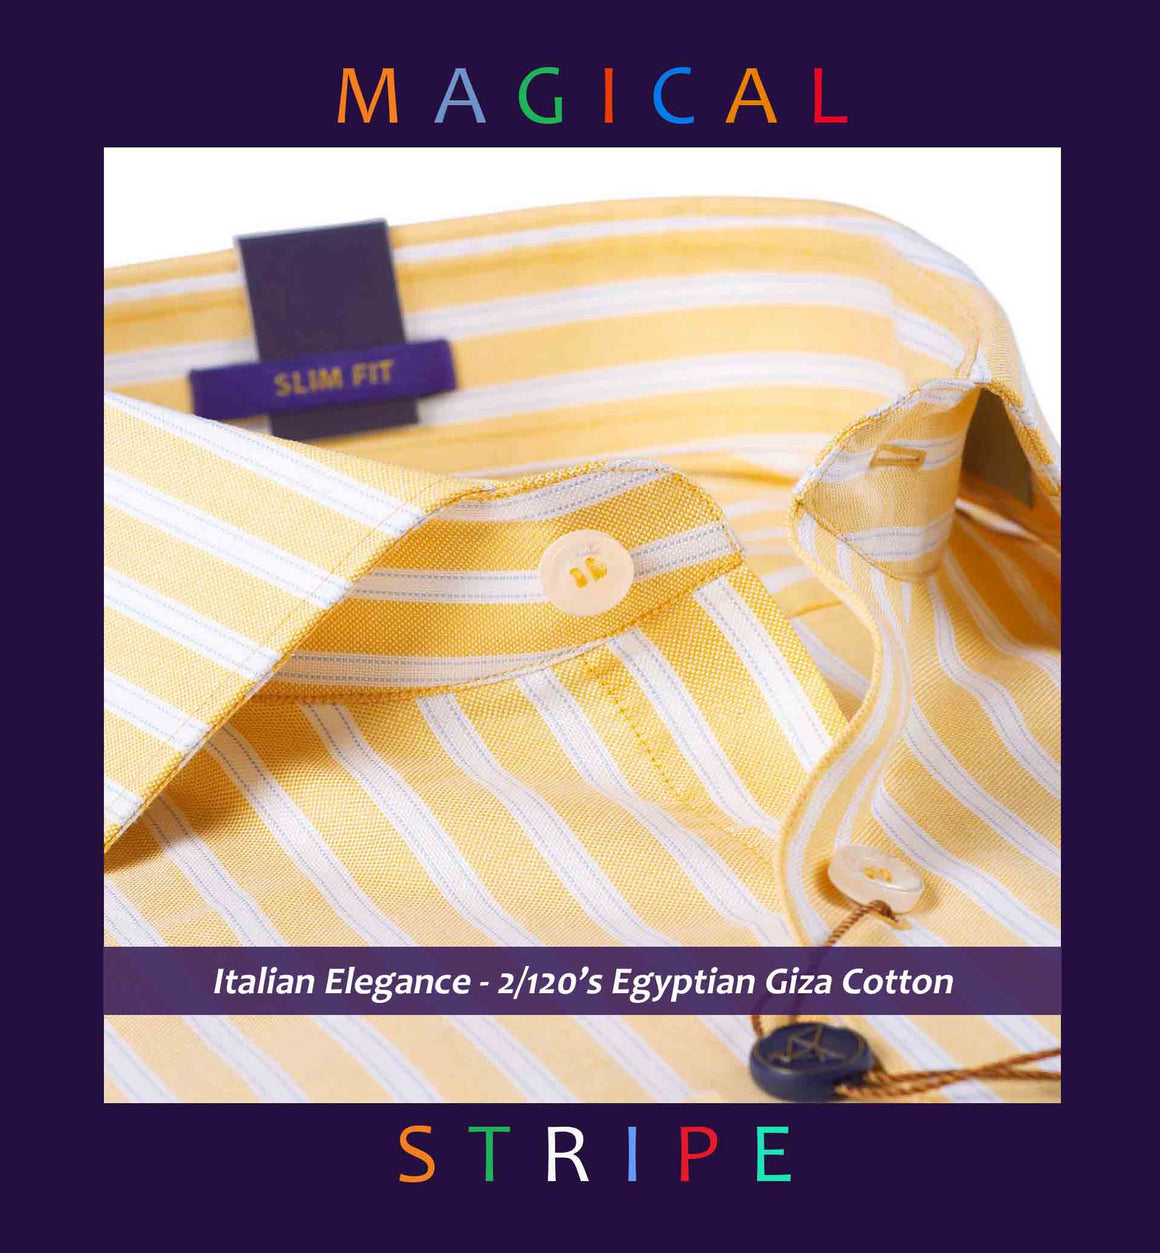 Sondrio - Canary Yellow Magical Stripe